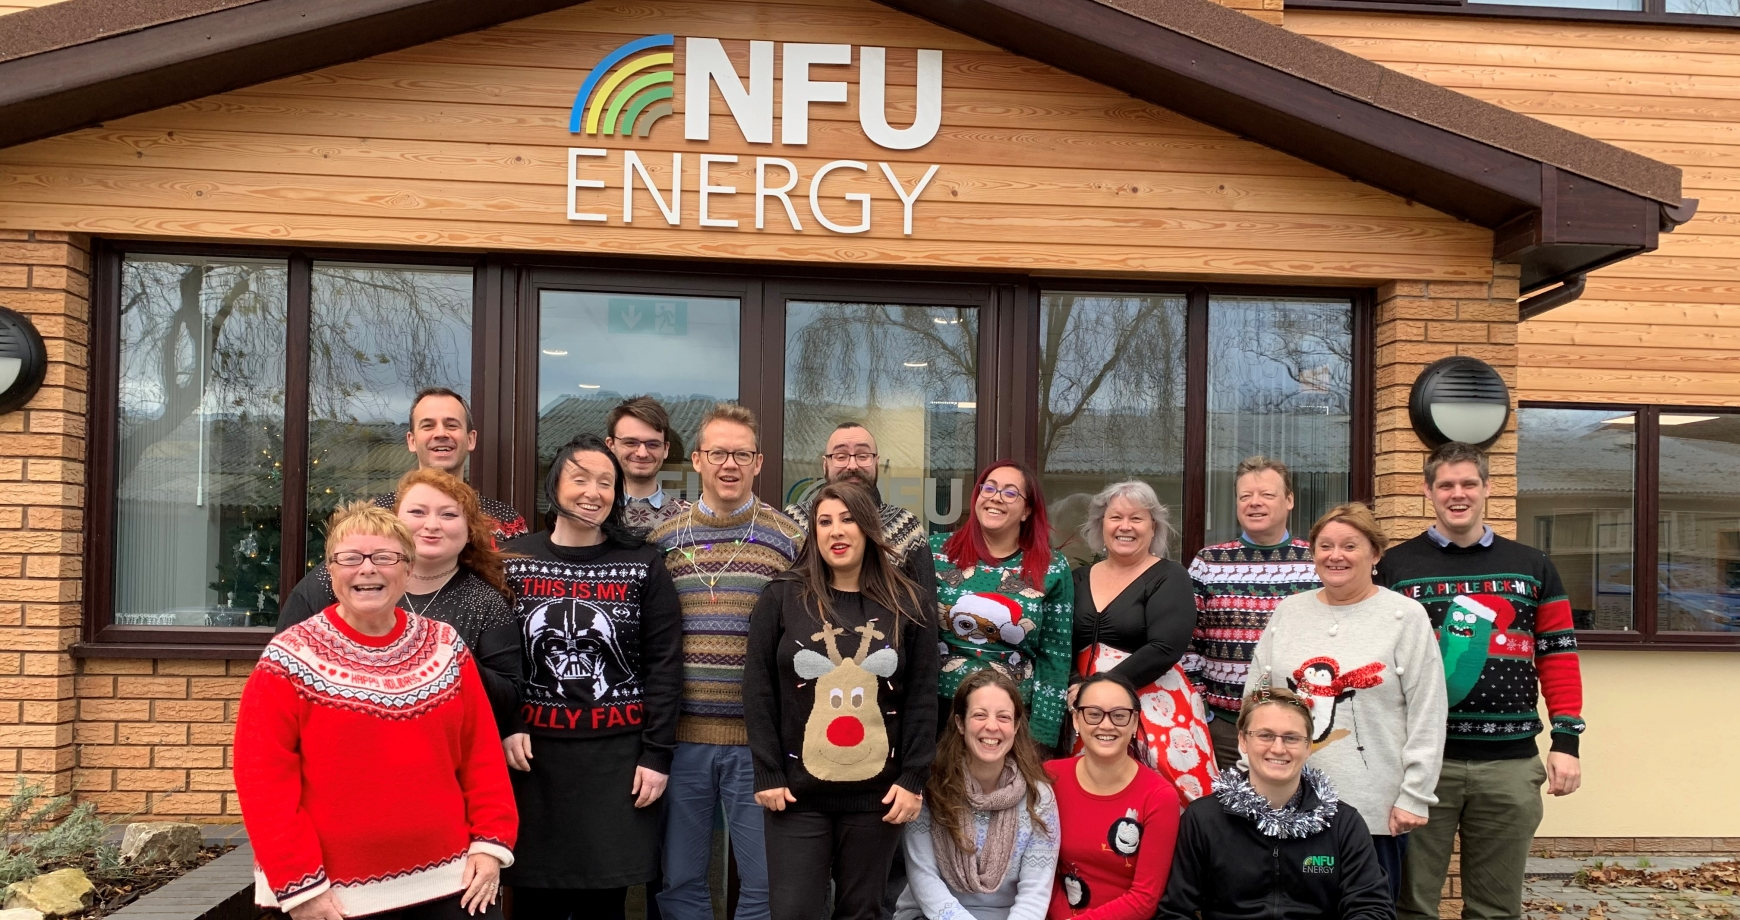 Staff in Christmas Jumpers outside the front of the office